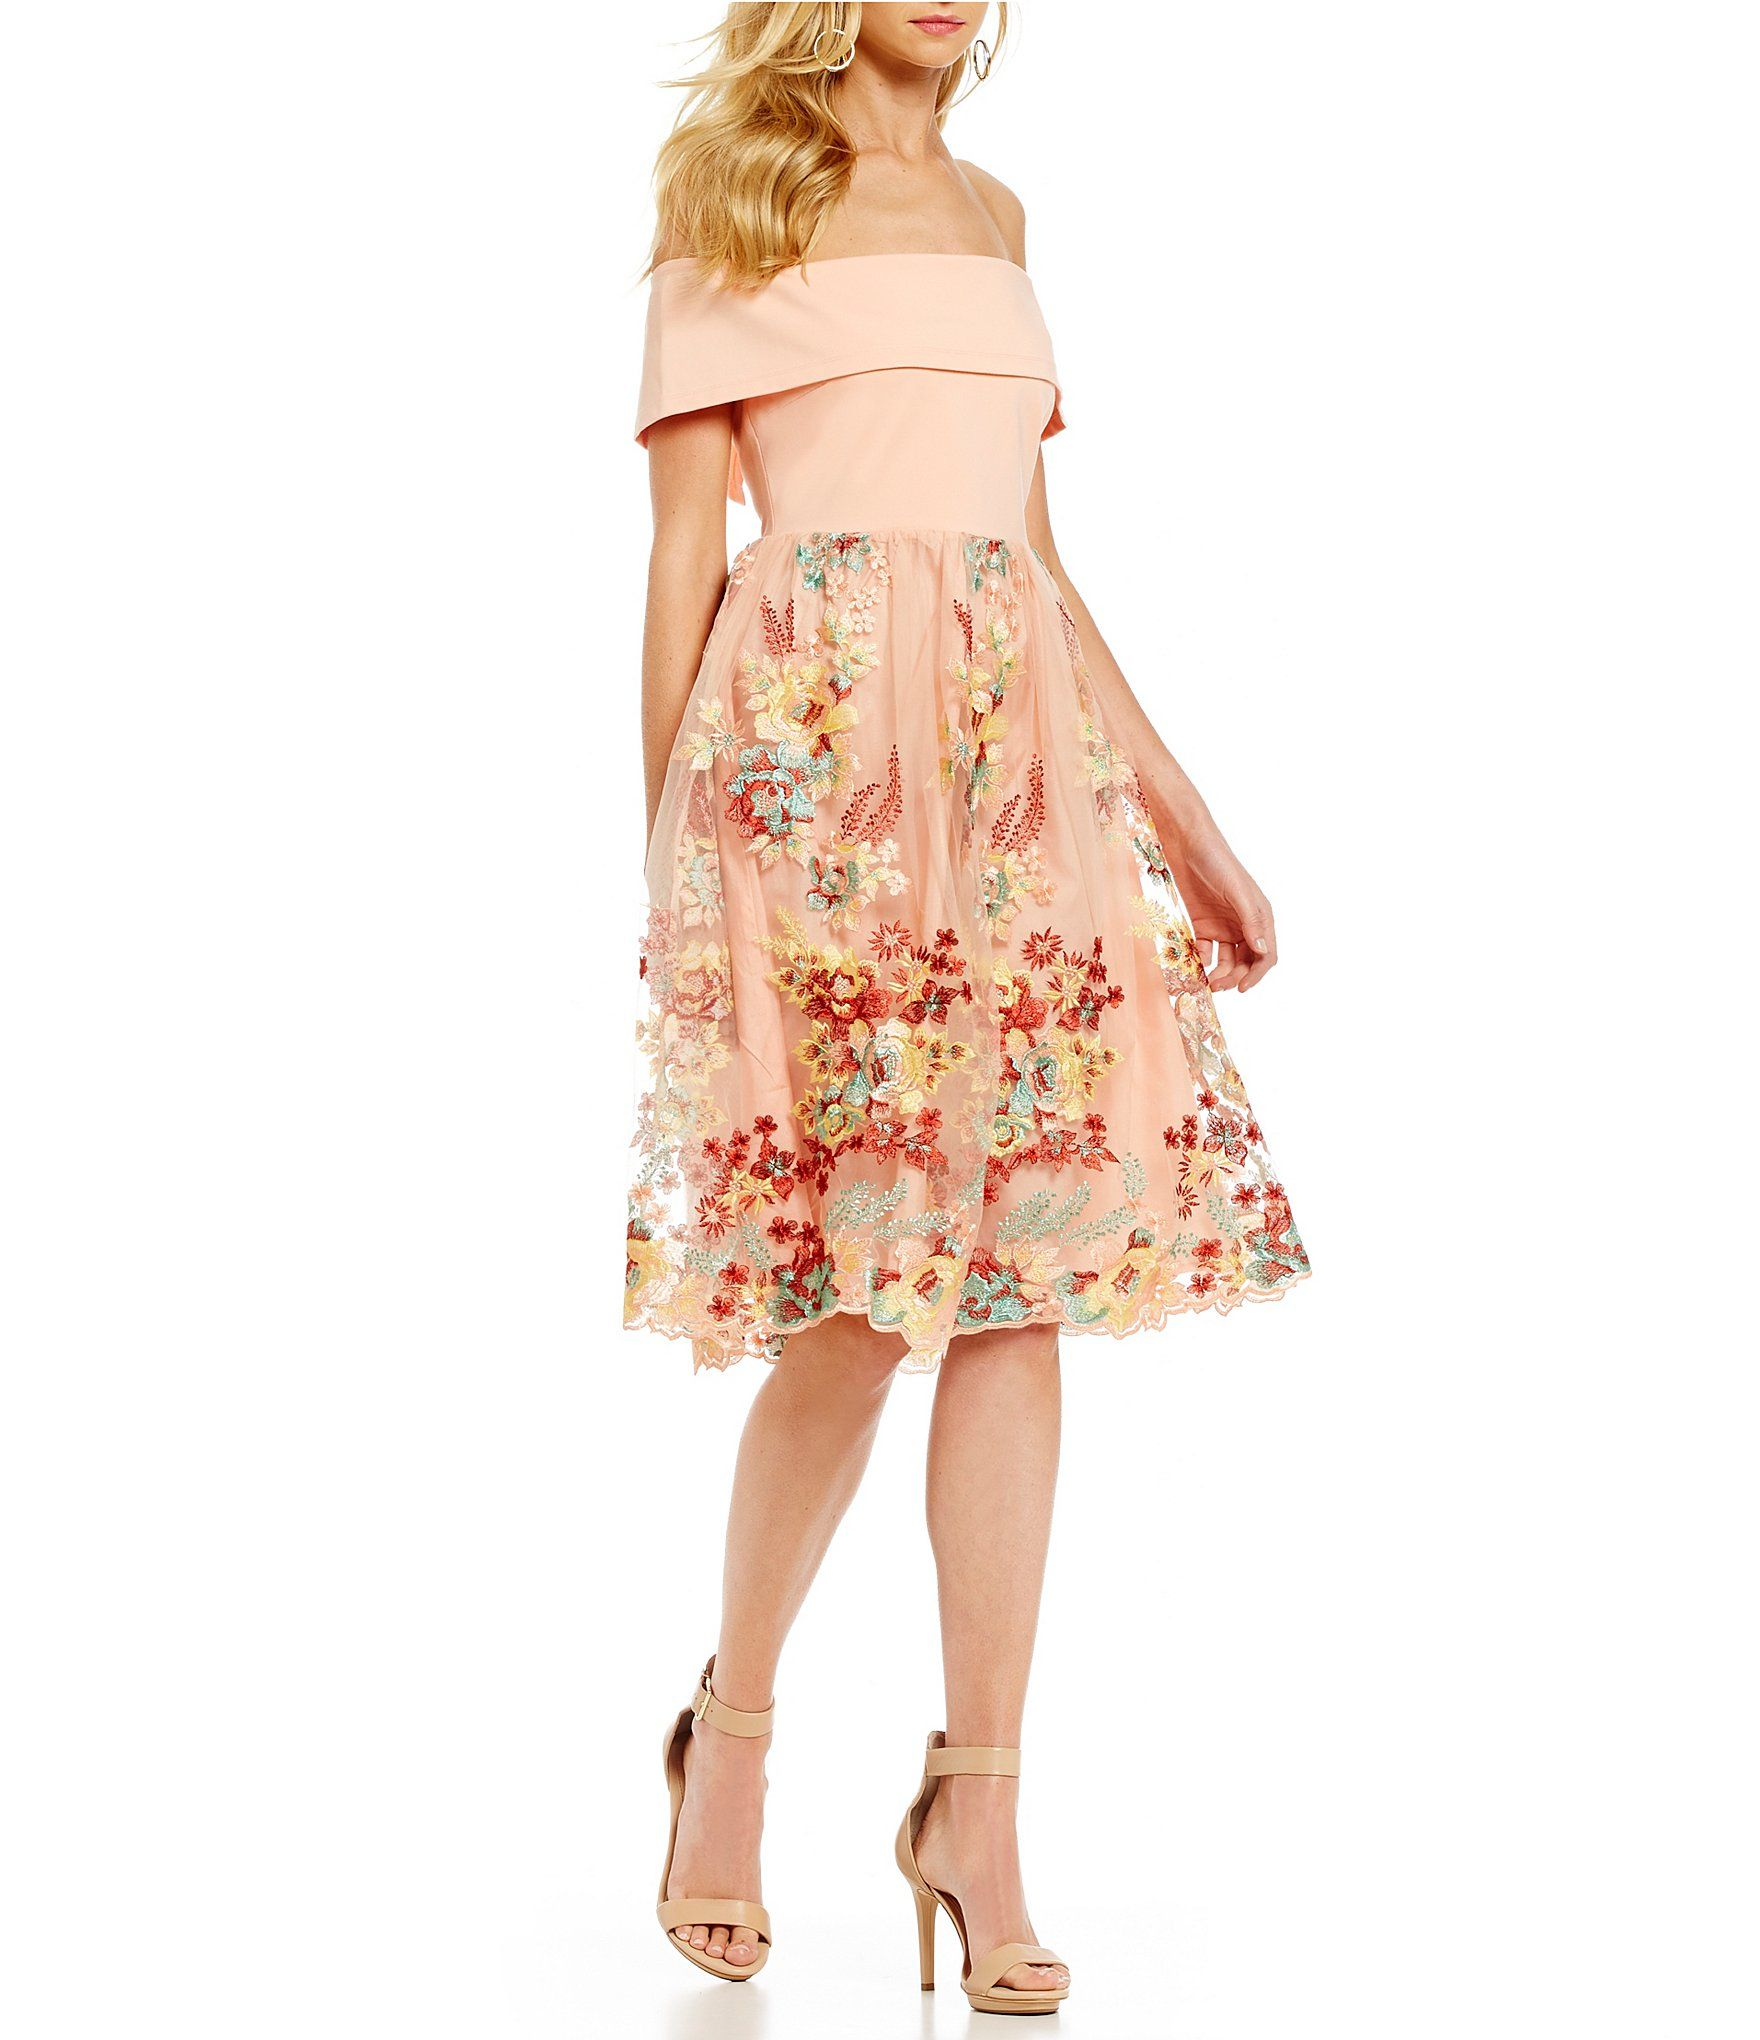 0d2093eef1 Gianni Bini Dana Off The Shoulder Embroidered Skirt Dress – DACC